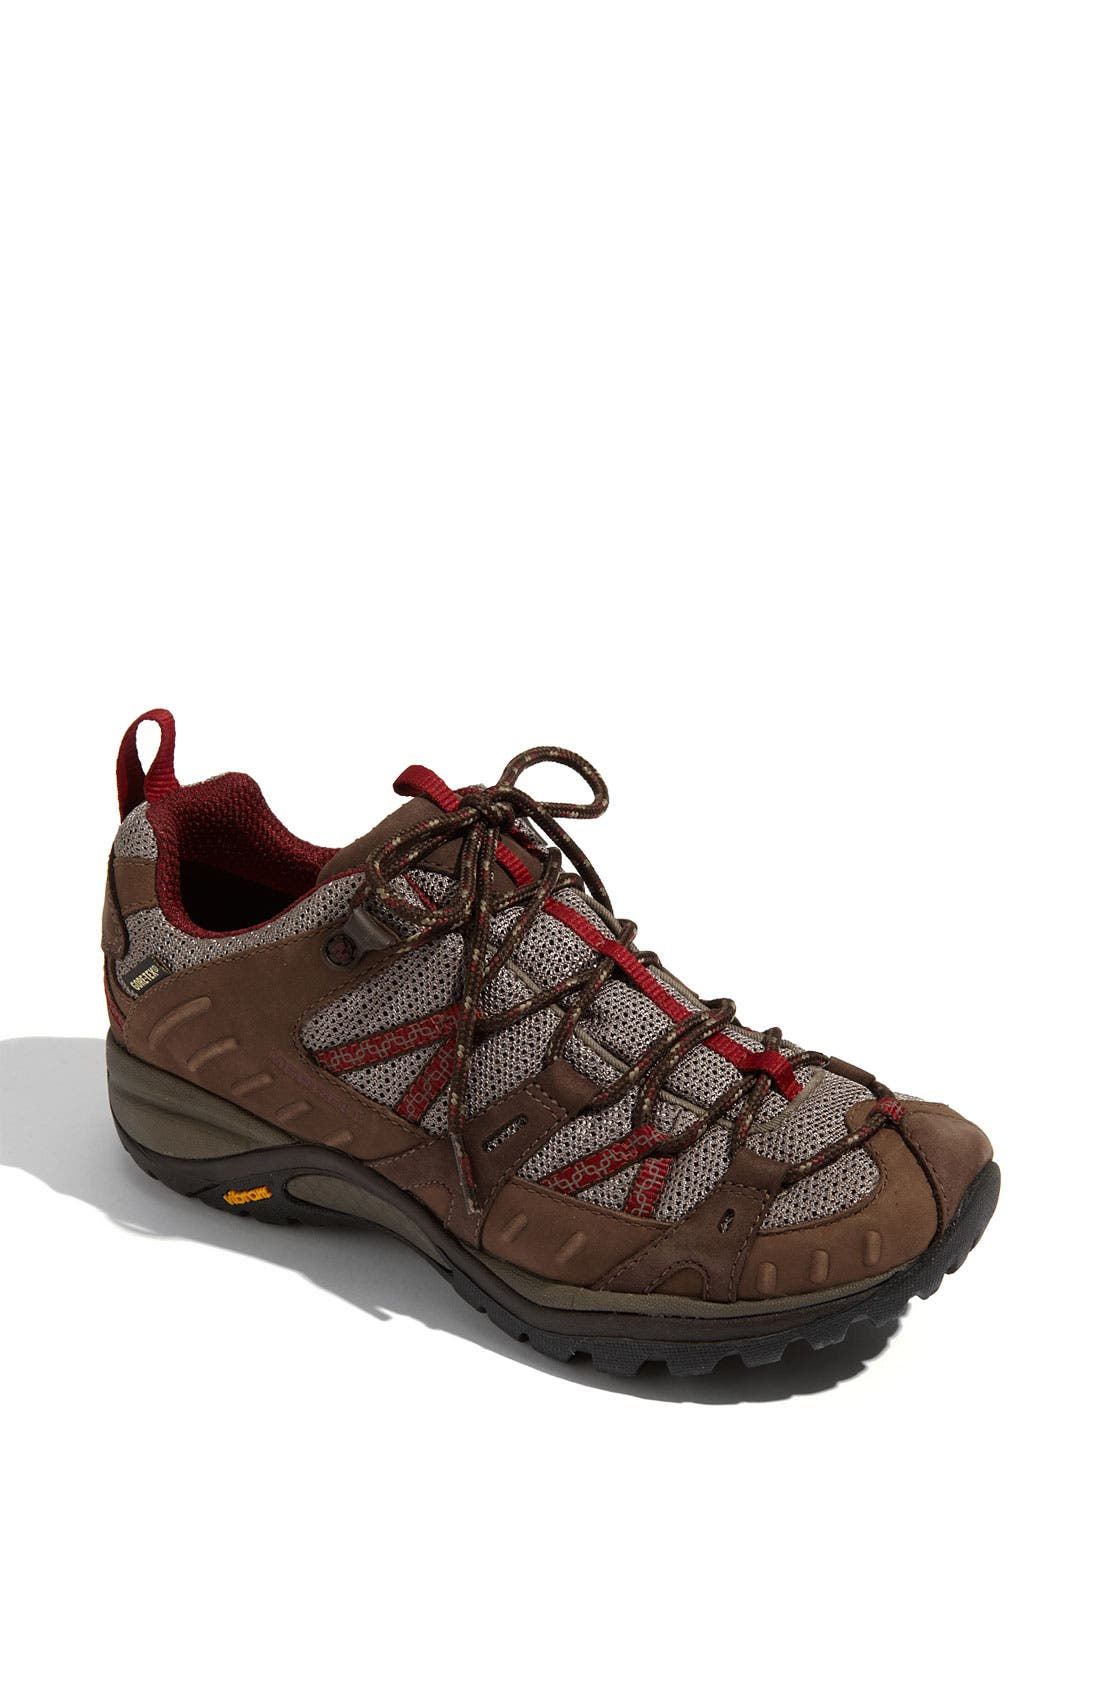 Alternate Image 1 Selected - Merrell 'Siren Sport Gore-Tex® XCR' Hiking Shoe (Women)